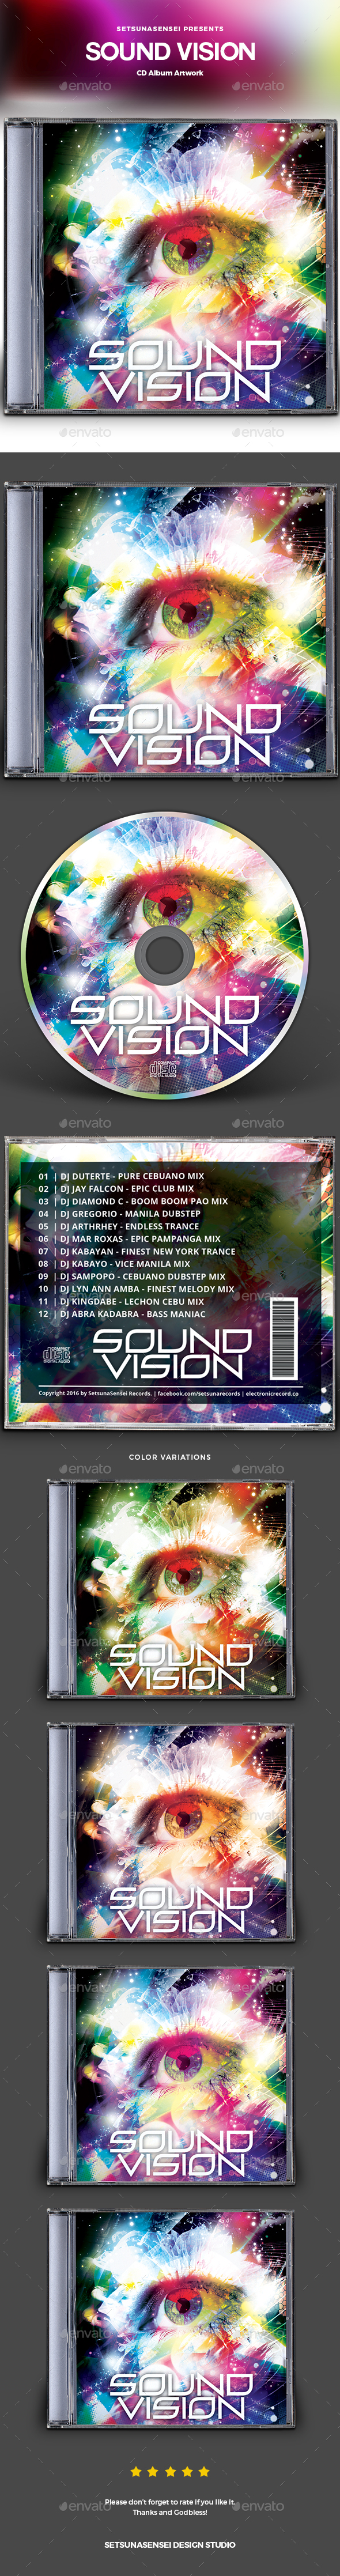 GraphicRiver Sound Vision CD Album Artwork 20977460